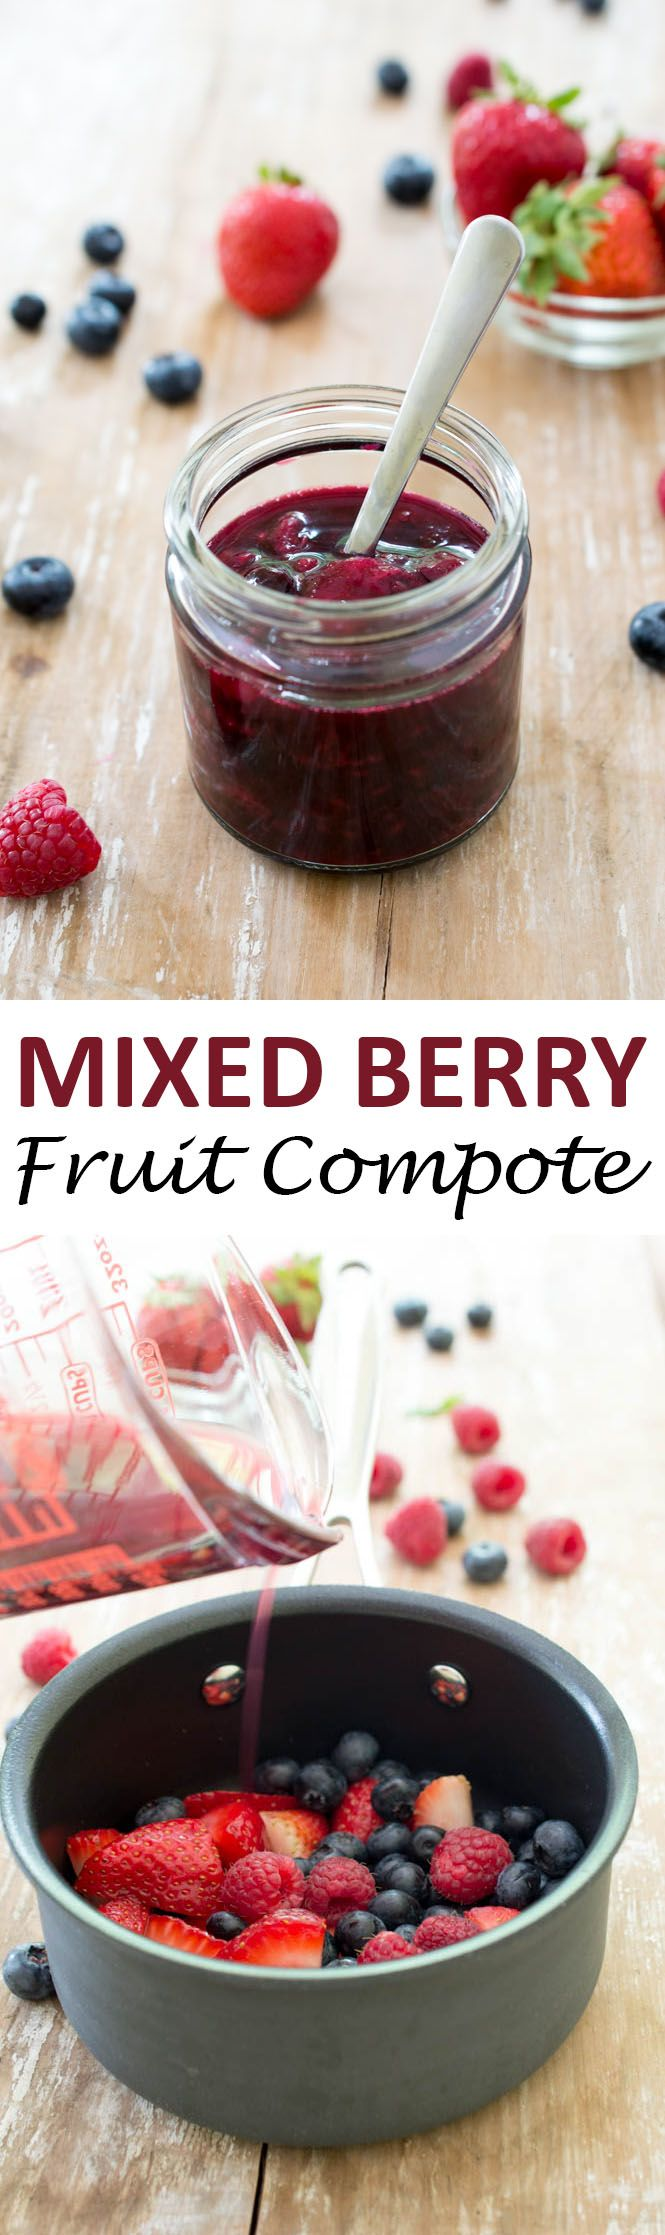 Mixed Berry Compote. No added sugar and only 3 ingredients. A great way to use up summer fruit! | chefsavvy.com #recipe #berry #compote